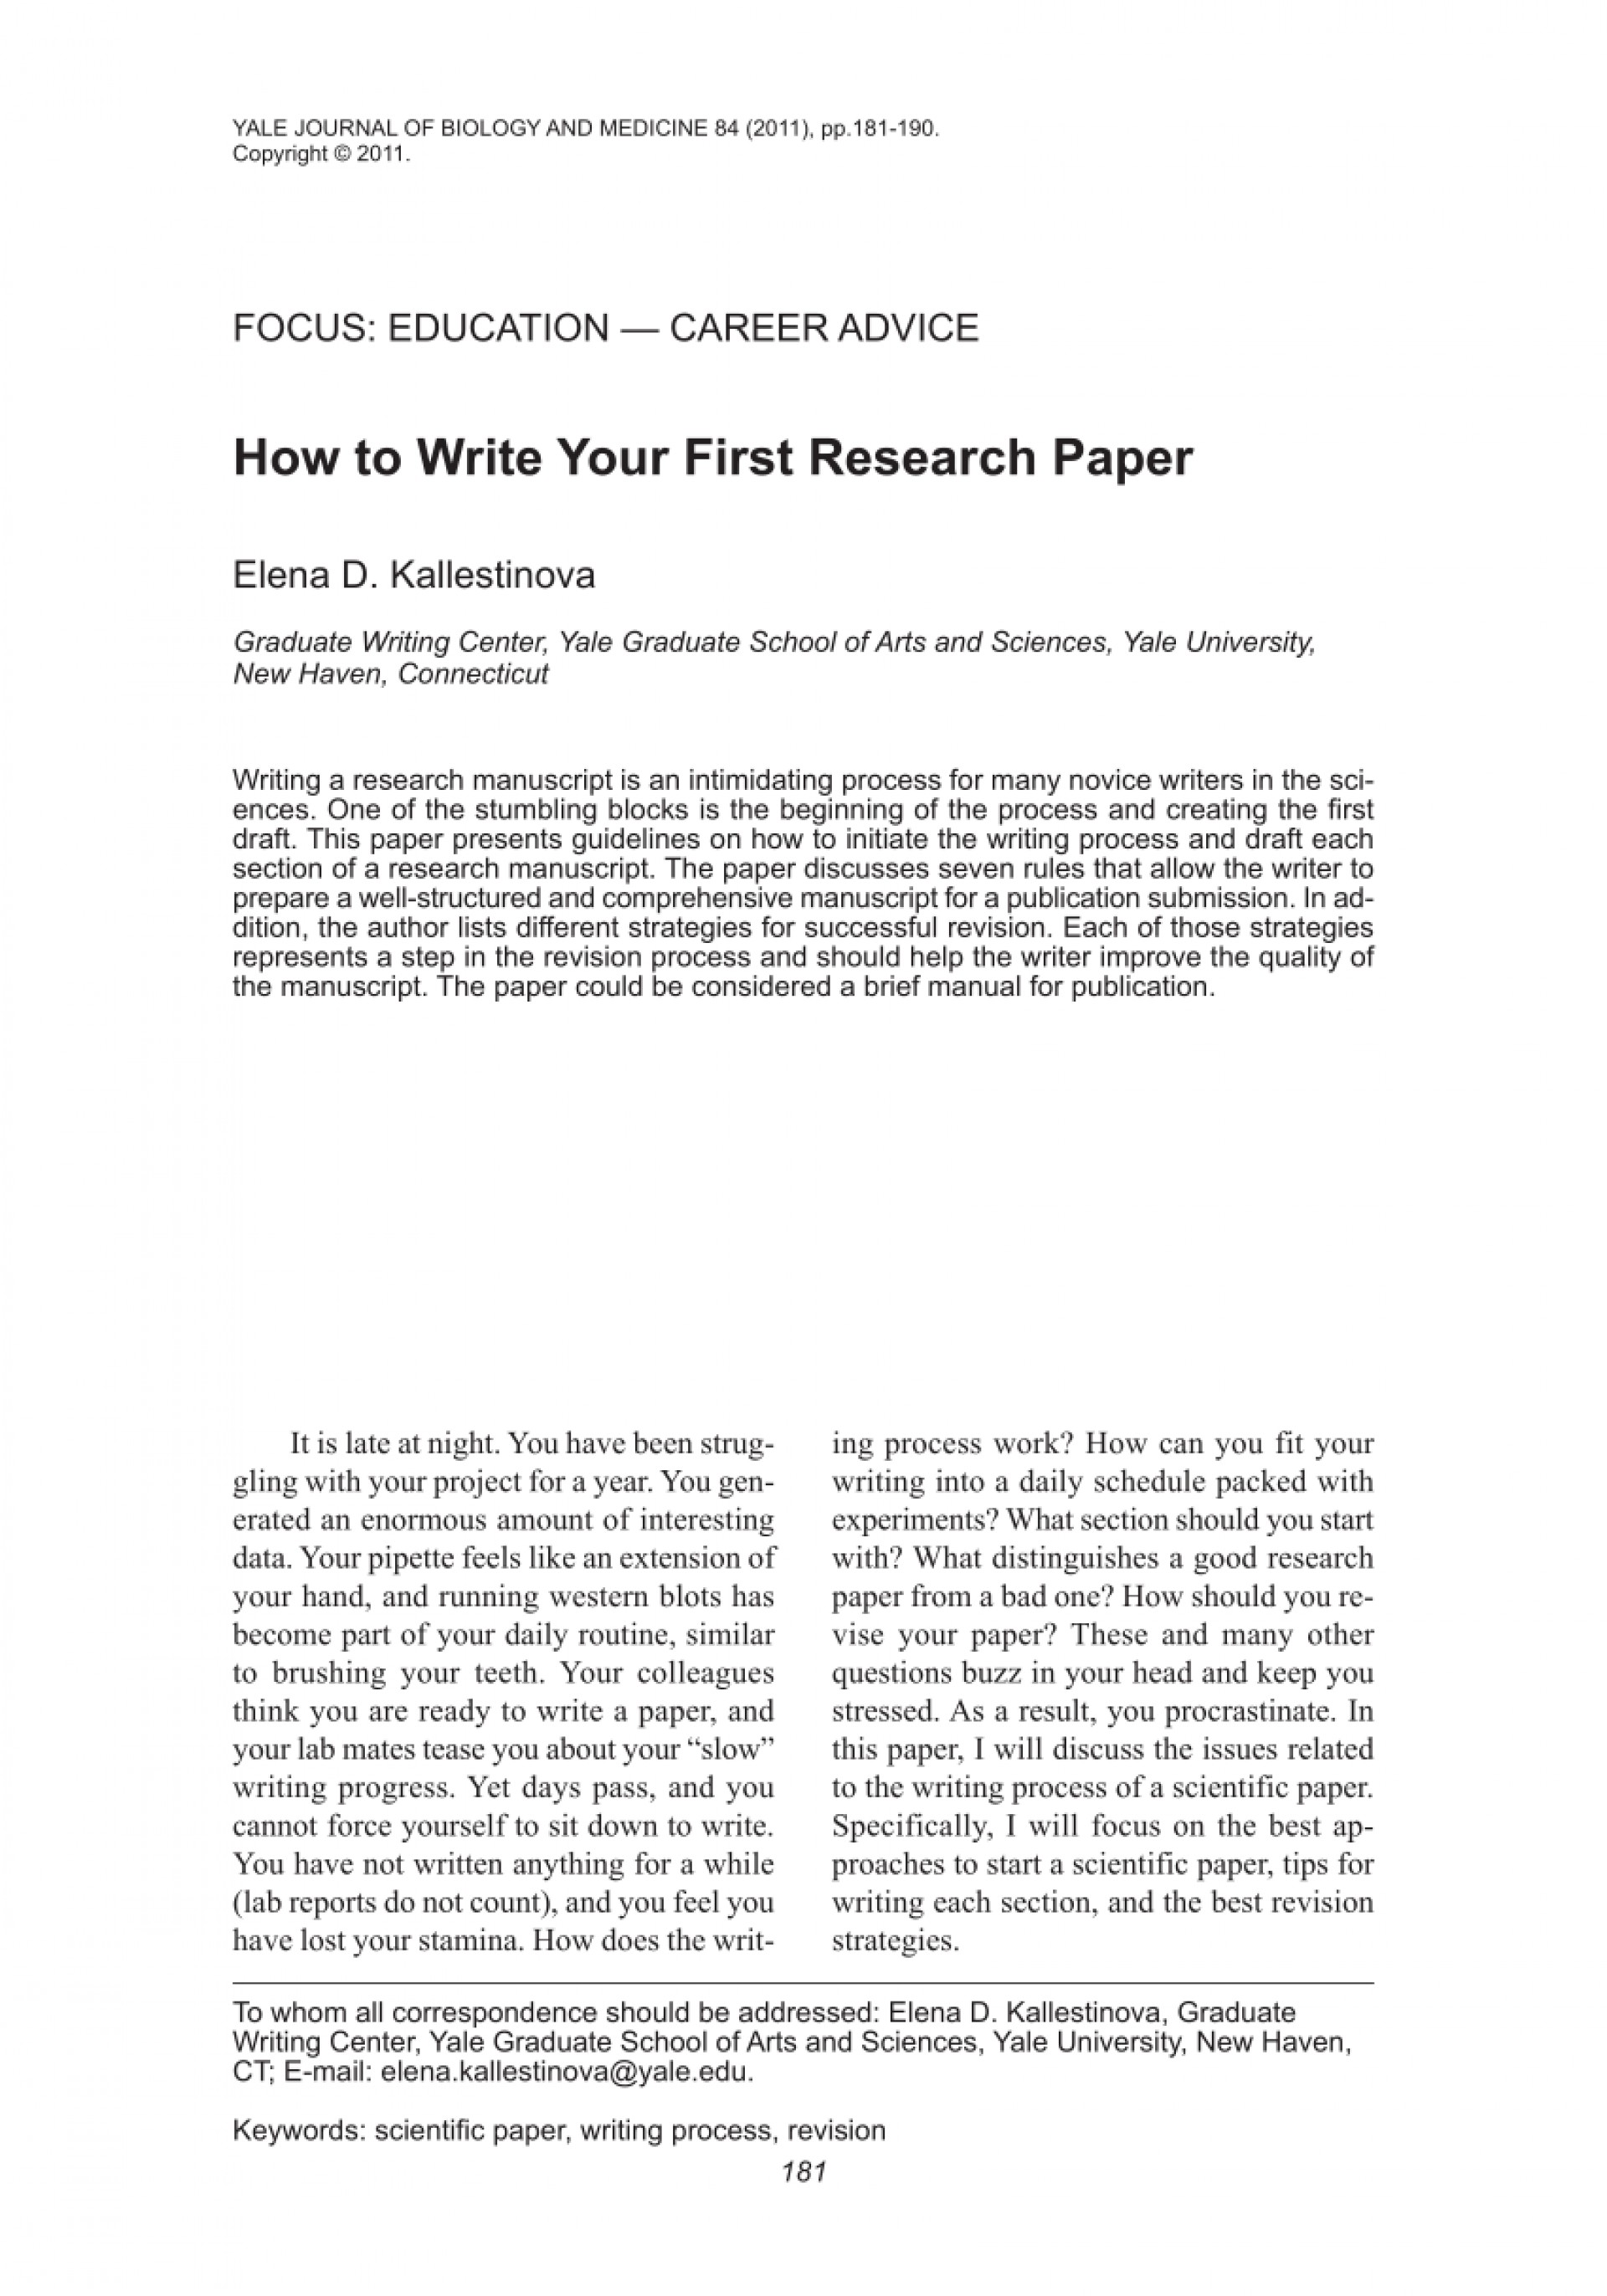 003 How To Write Research Paper Frightening A In Apa Format Sample Outline Owl Purdue Good Abstract 1920